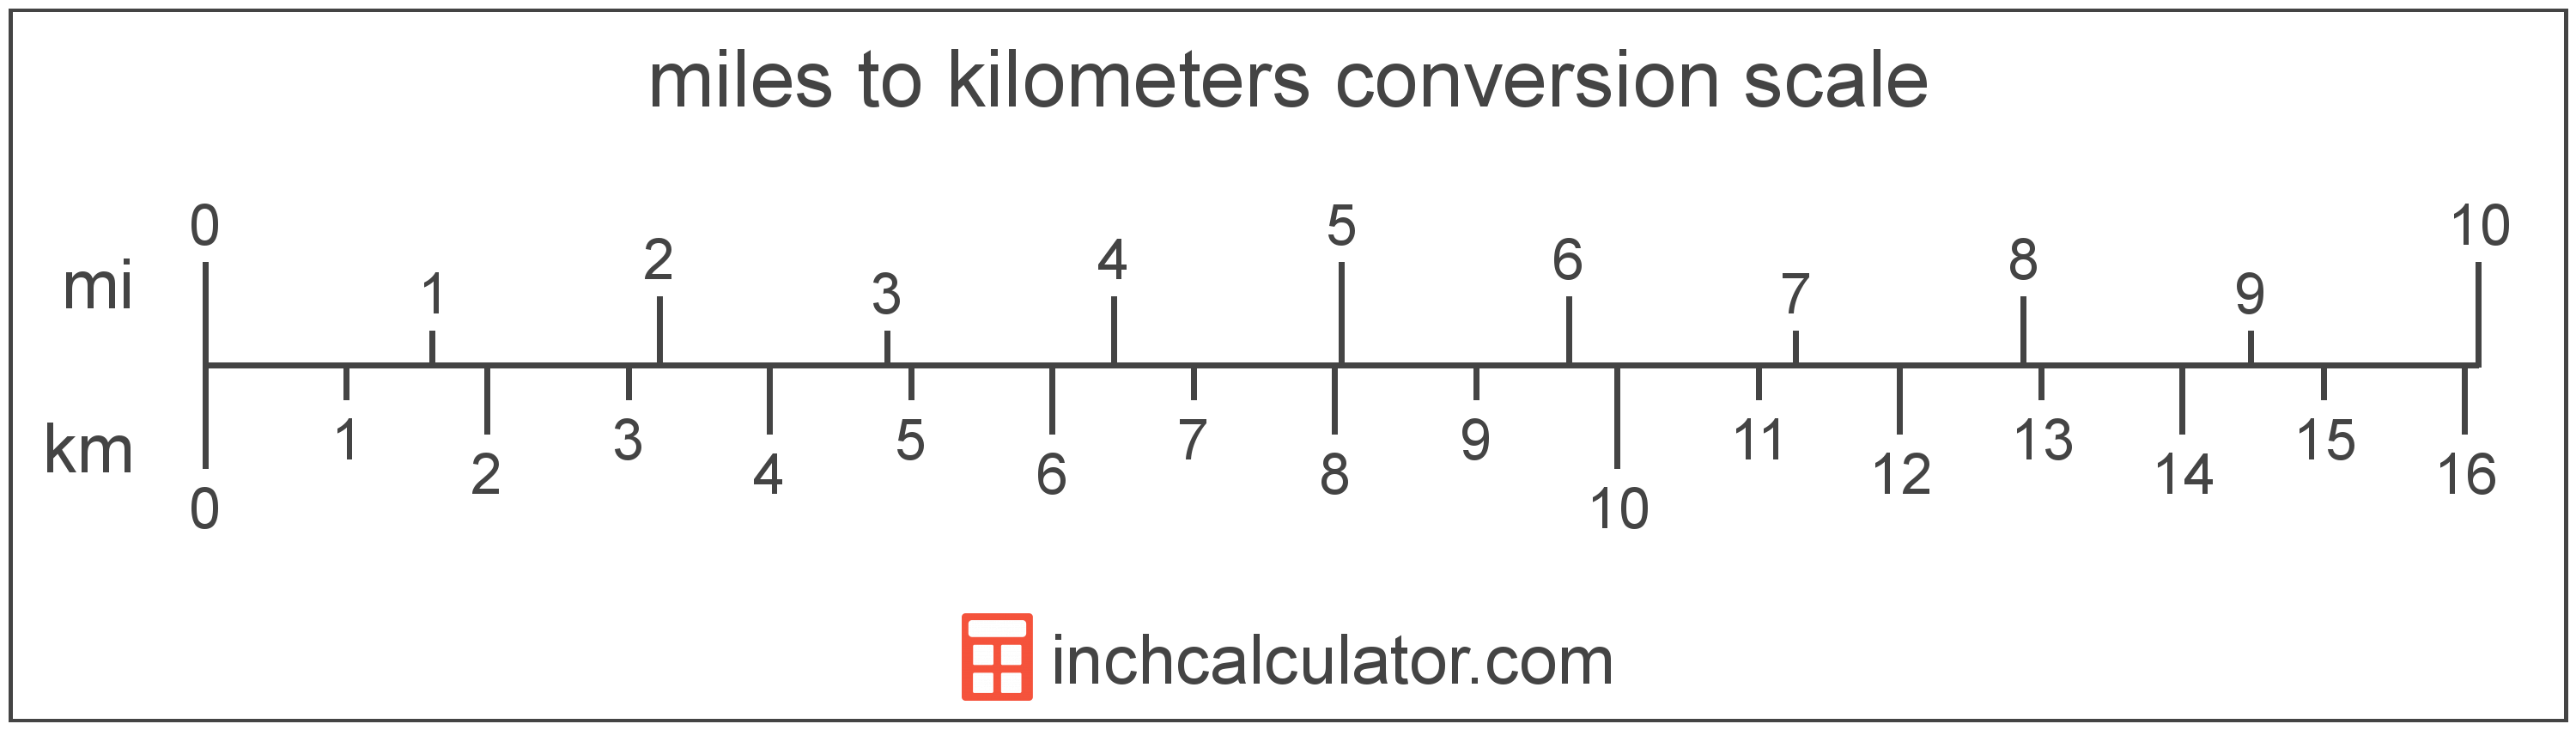 Miles unit of measurement conversion